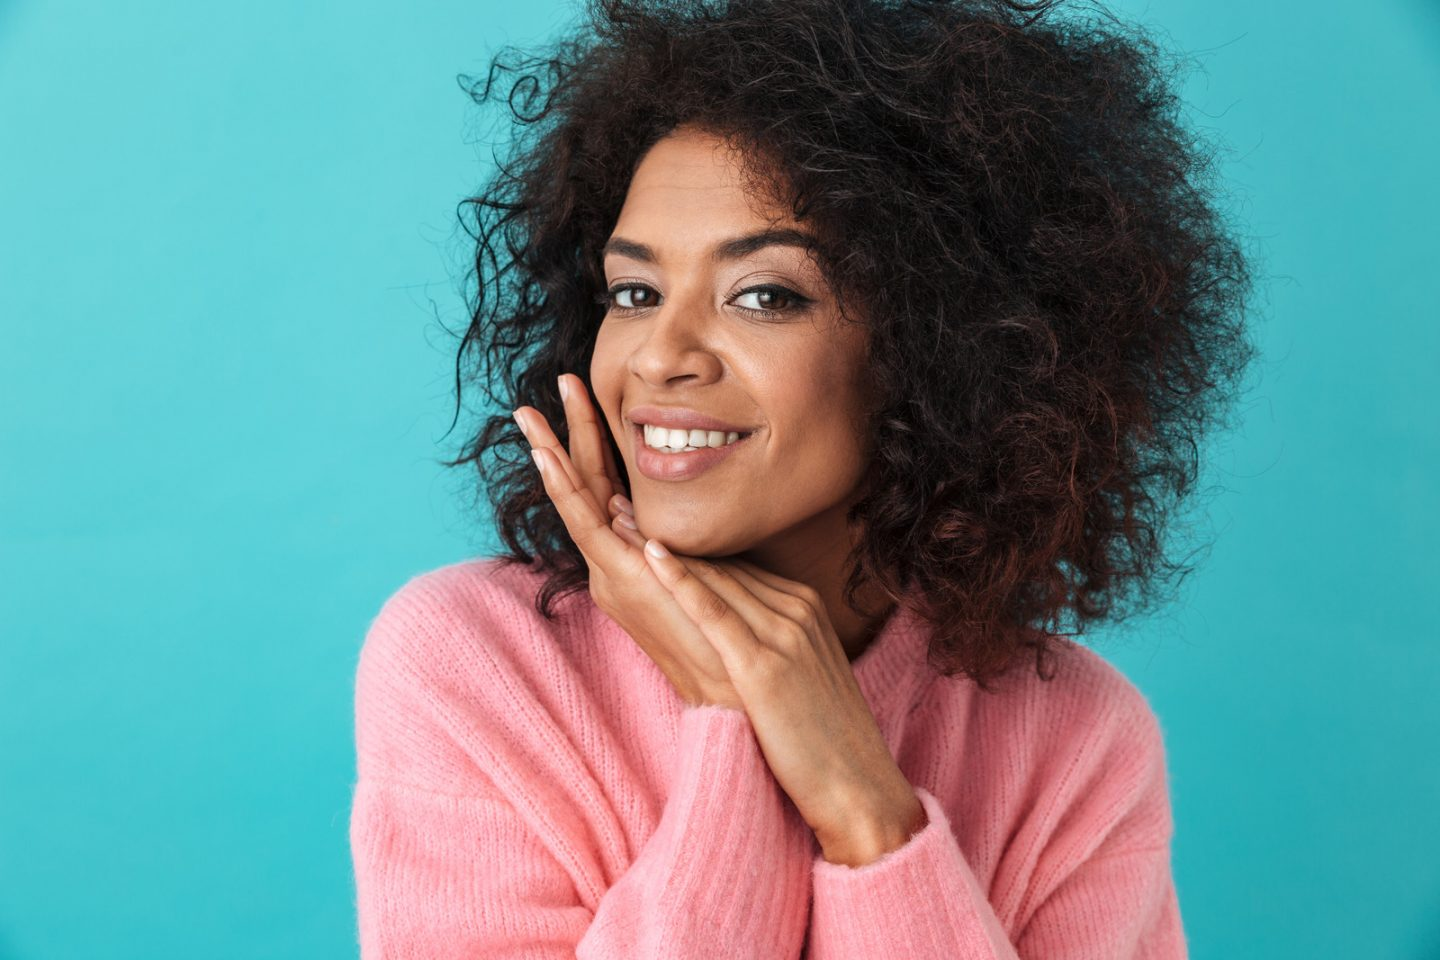 Multicolor image of pretty woman 20s with afro hairstyle smiling on camera with holding hands at face isolated over blue background